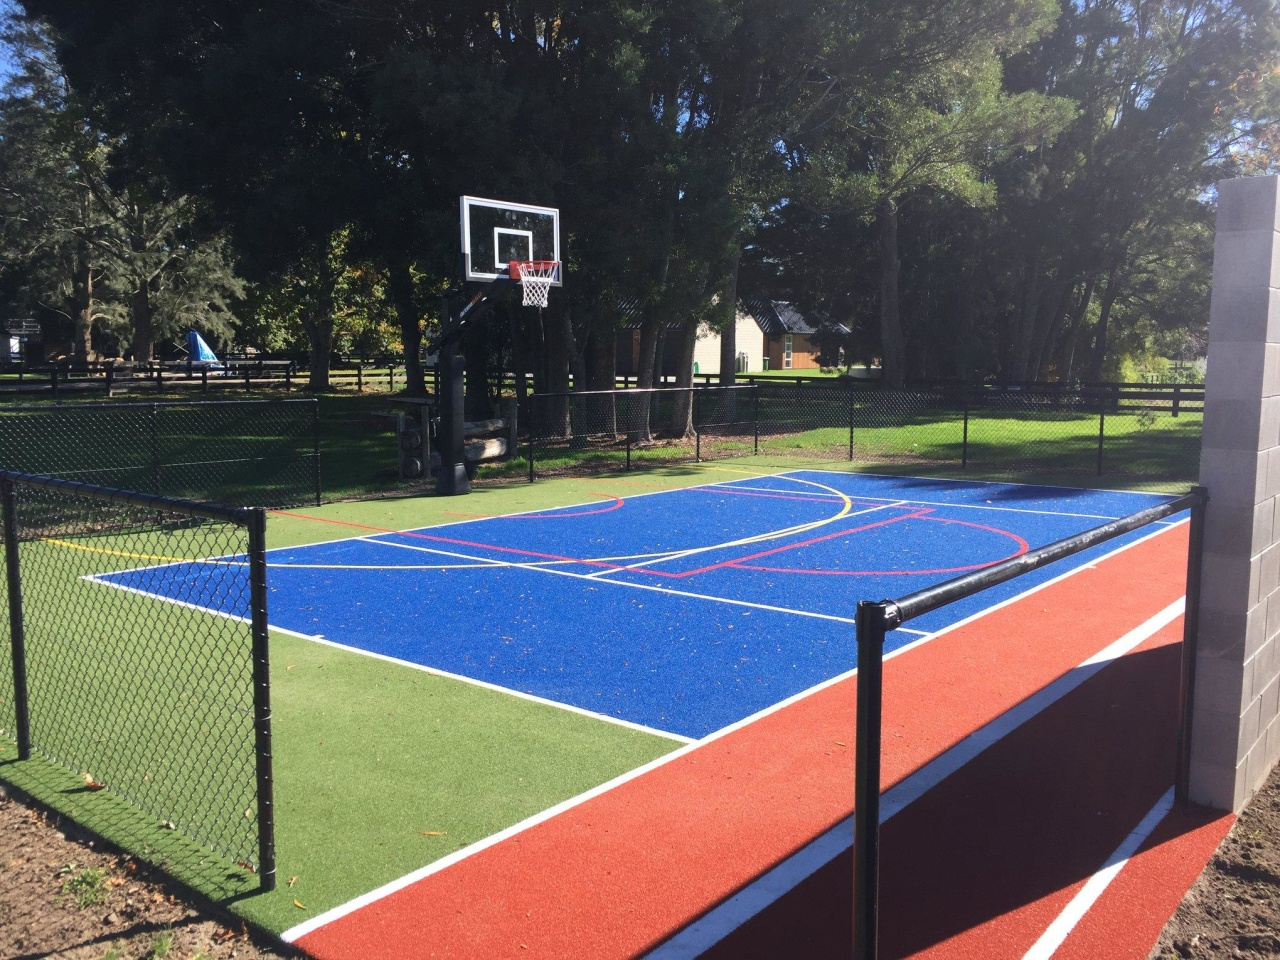 With TigerTurf's multi-sport surfaces, your tennis court can ball game, grass, net, play, sport venue, sports, tennis court, black